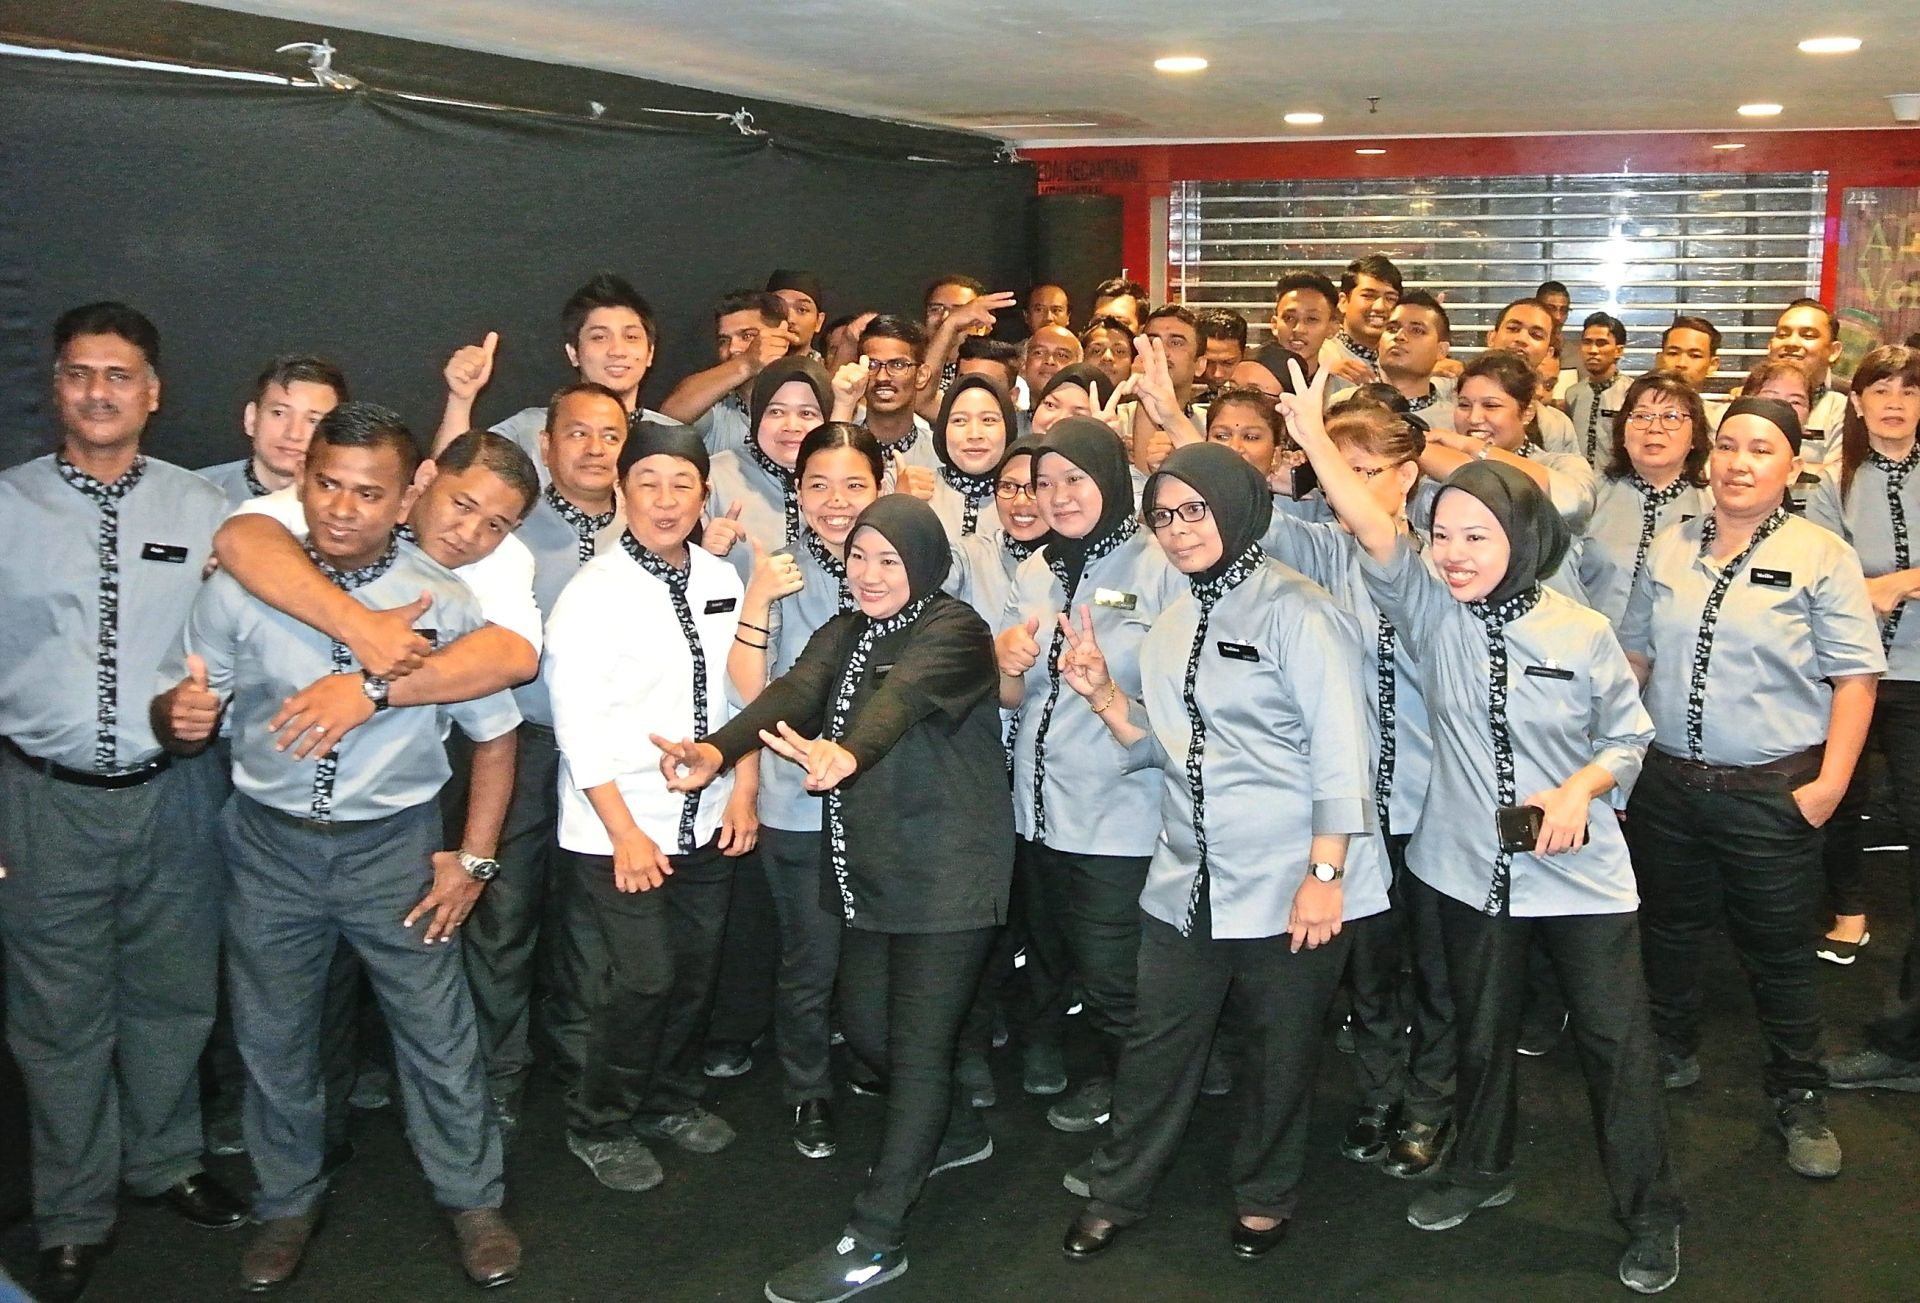 Mercato employees all raring to serve customers.